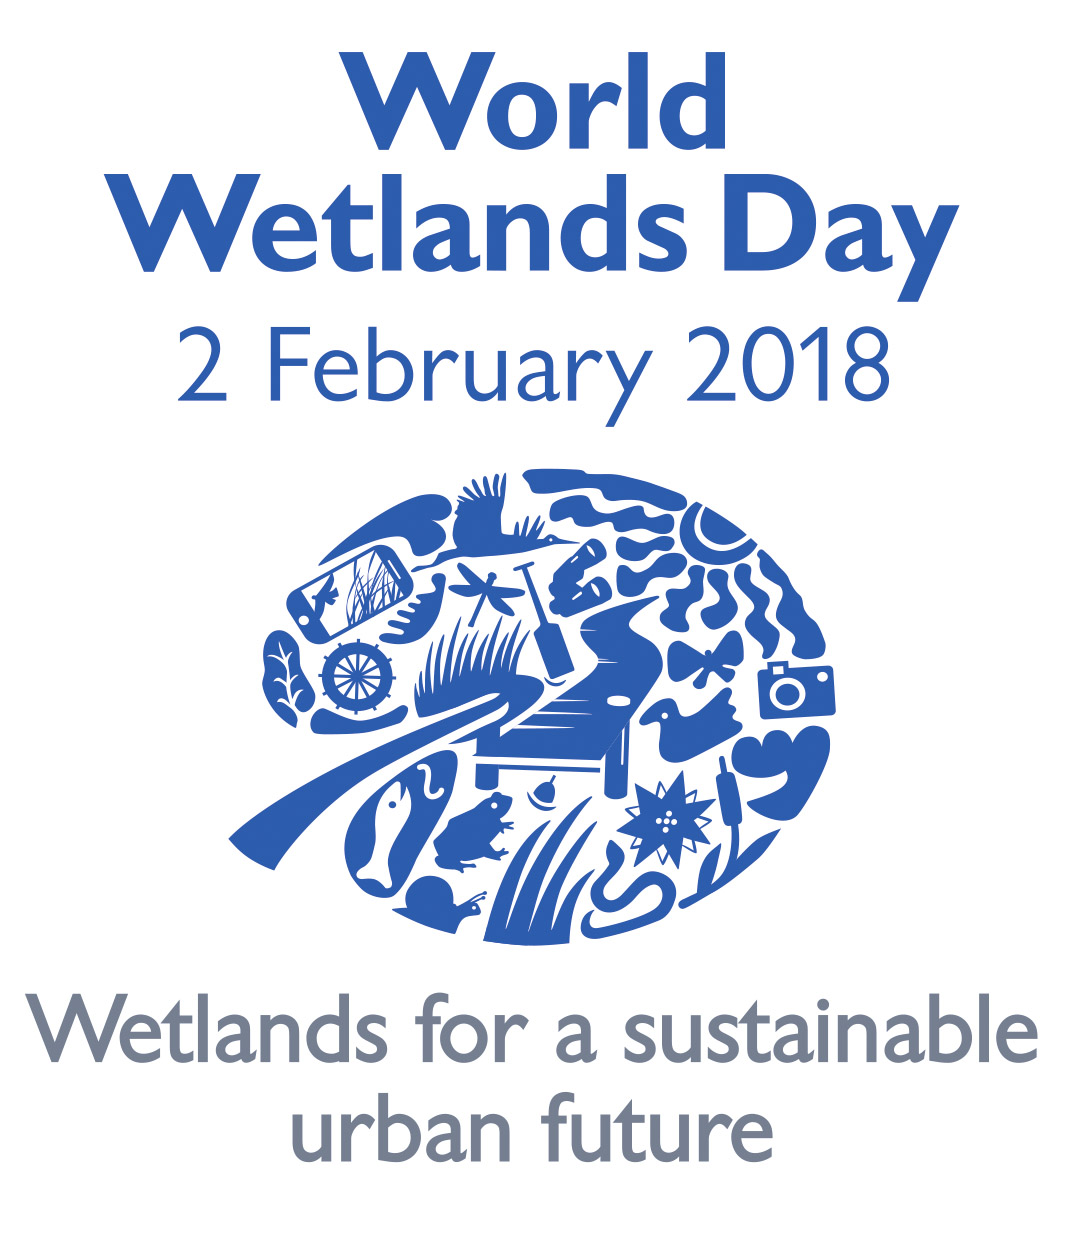 World Wetlands Day 2018 Poster